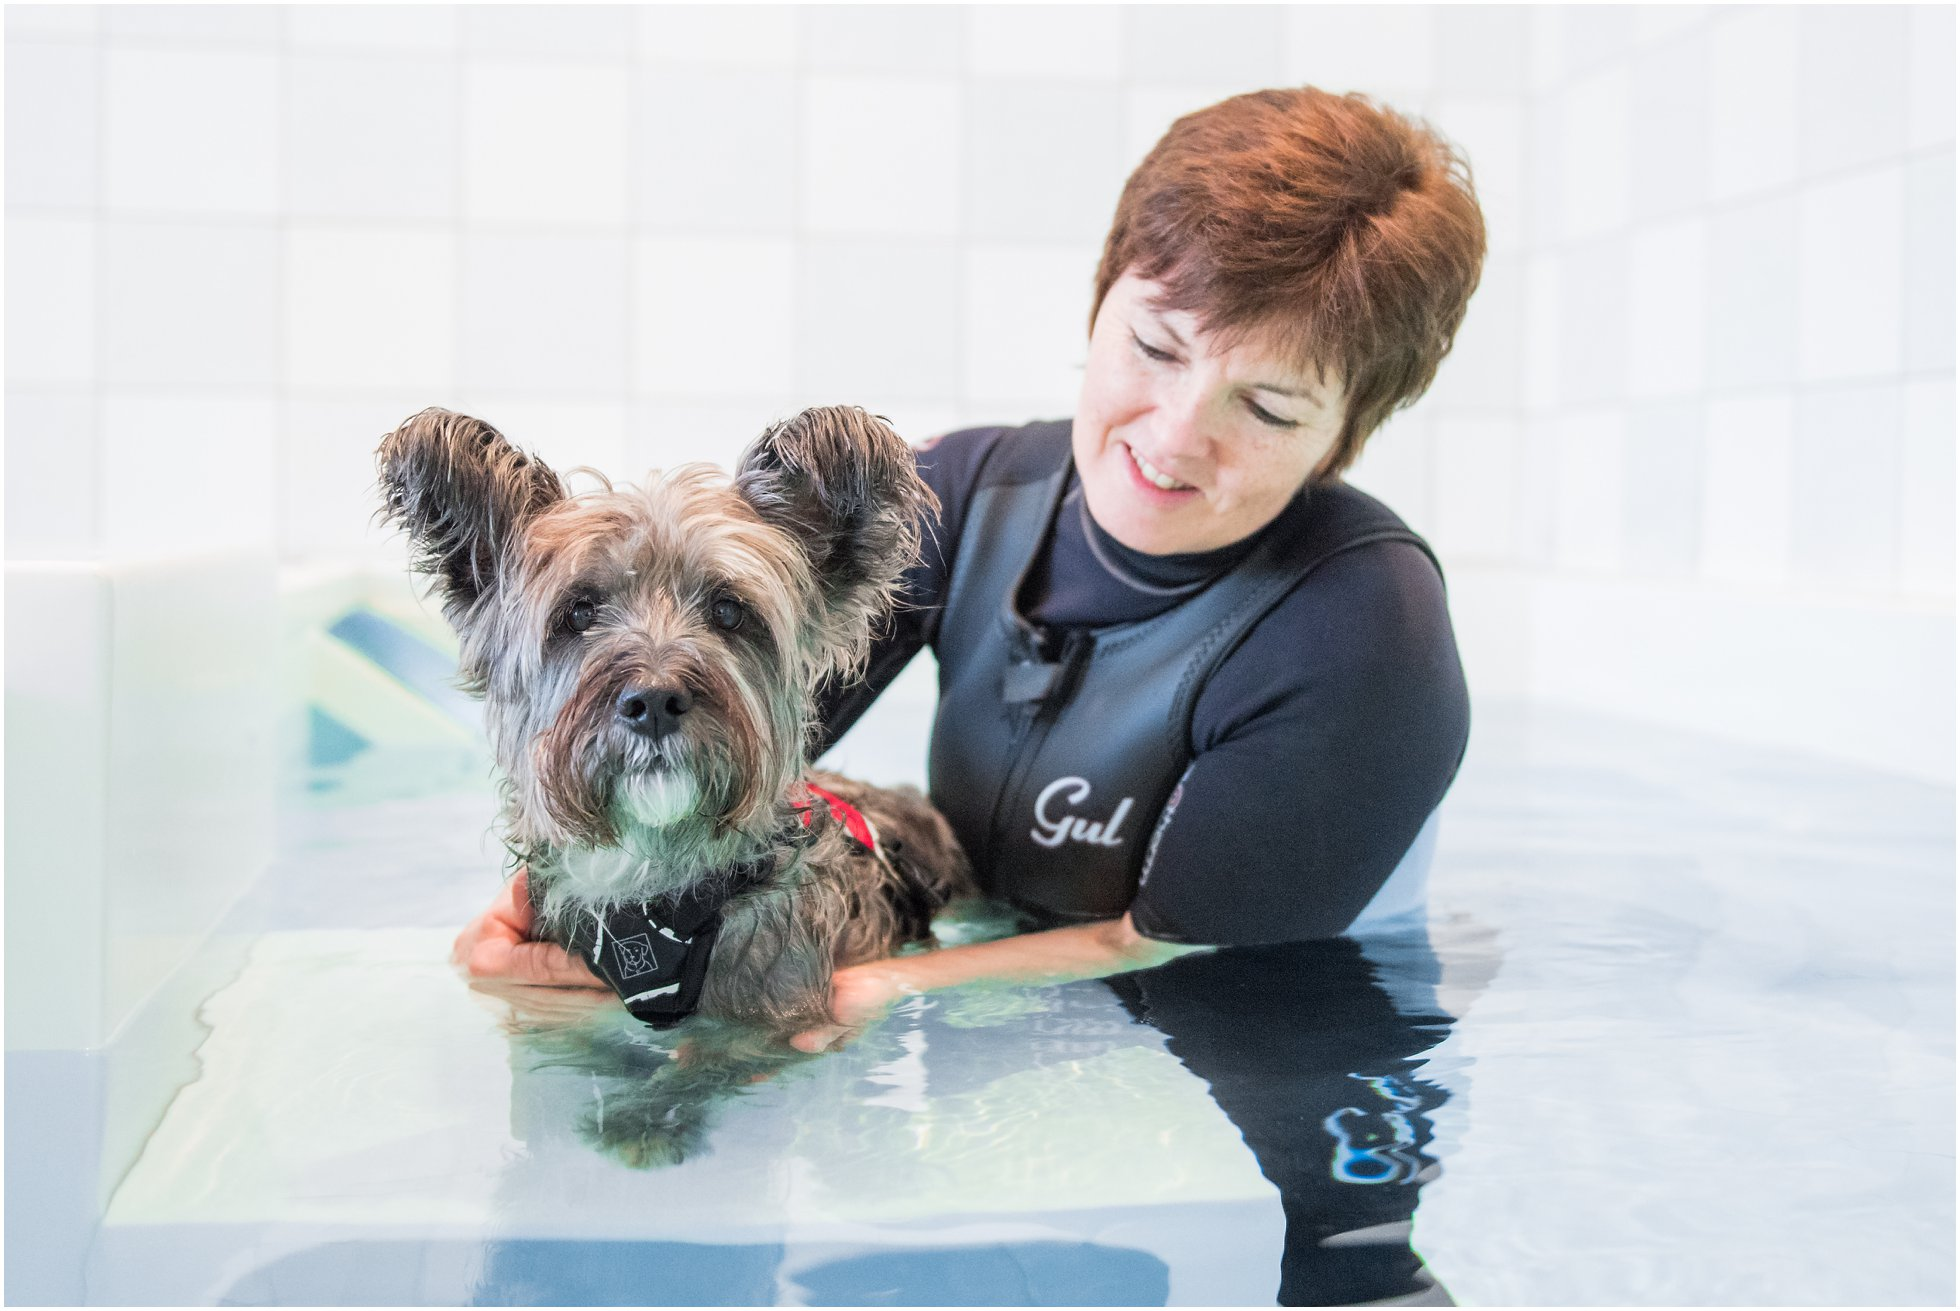 Barbara Houlding dog hydrotherapist with a terrier in the pool